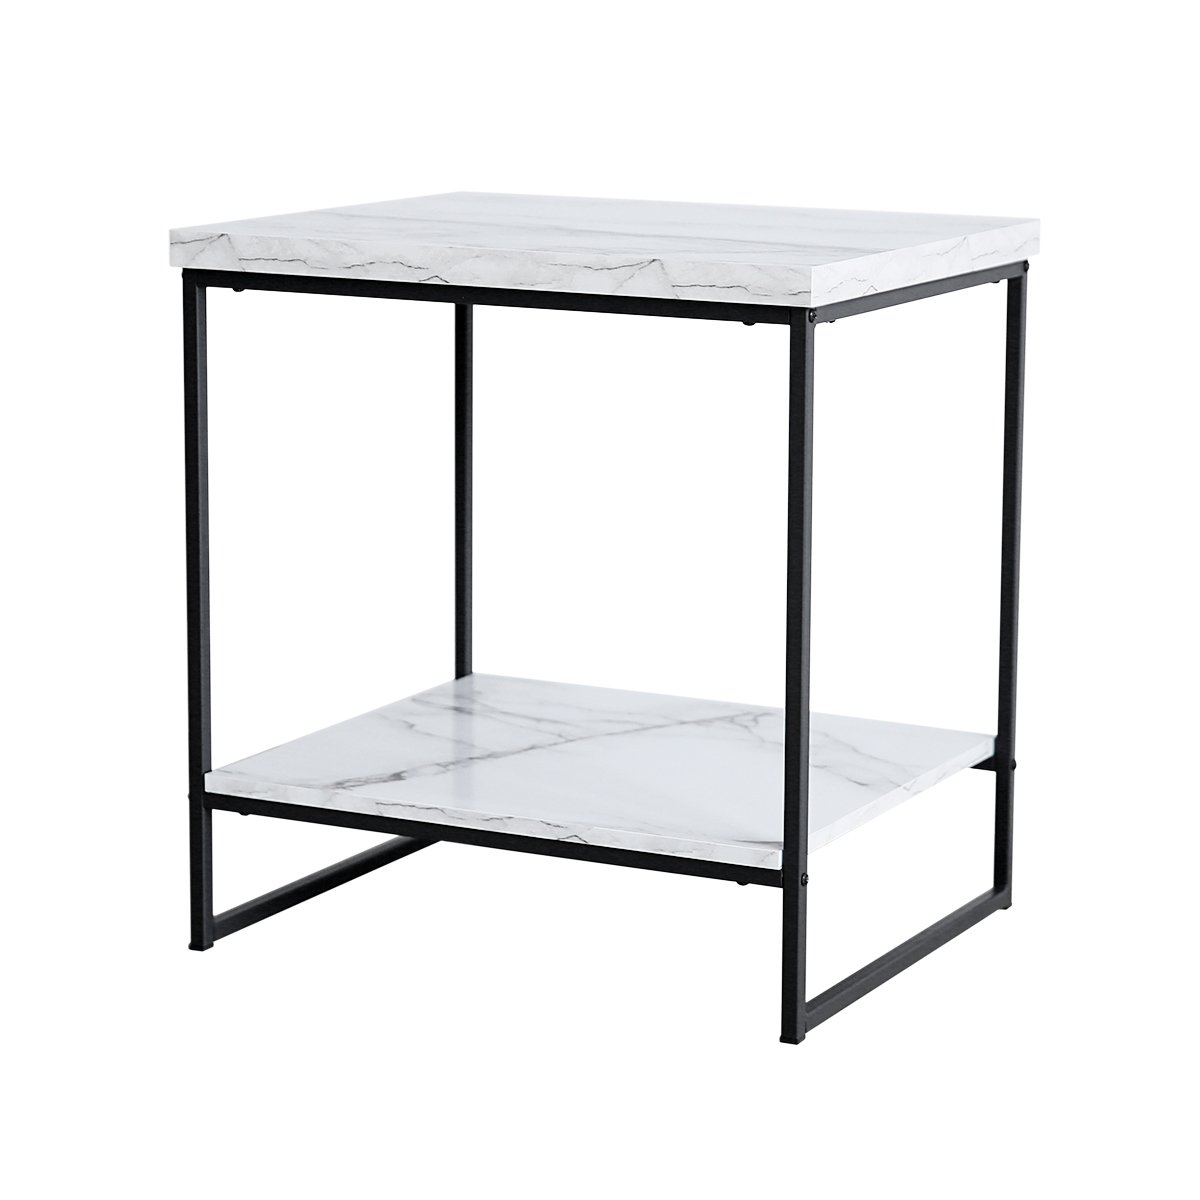 Tilly Lin Faux Marble Side Table, Water Resistant Accent End Table with Lower Shelf for Living Room, Bed Room